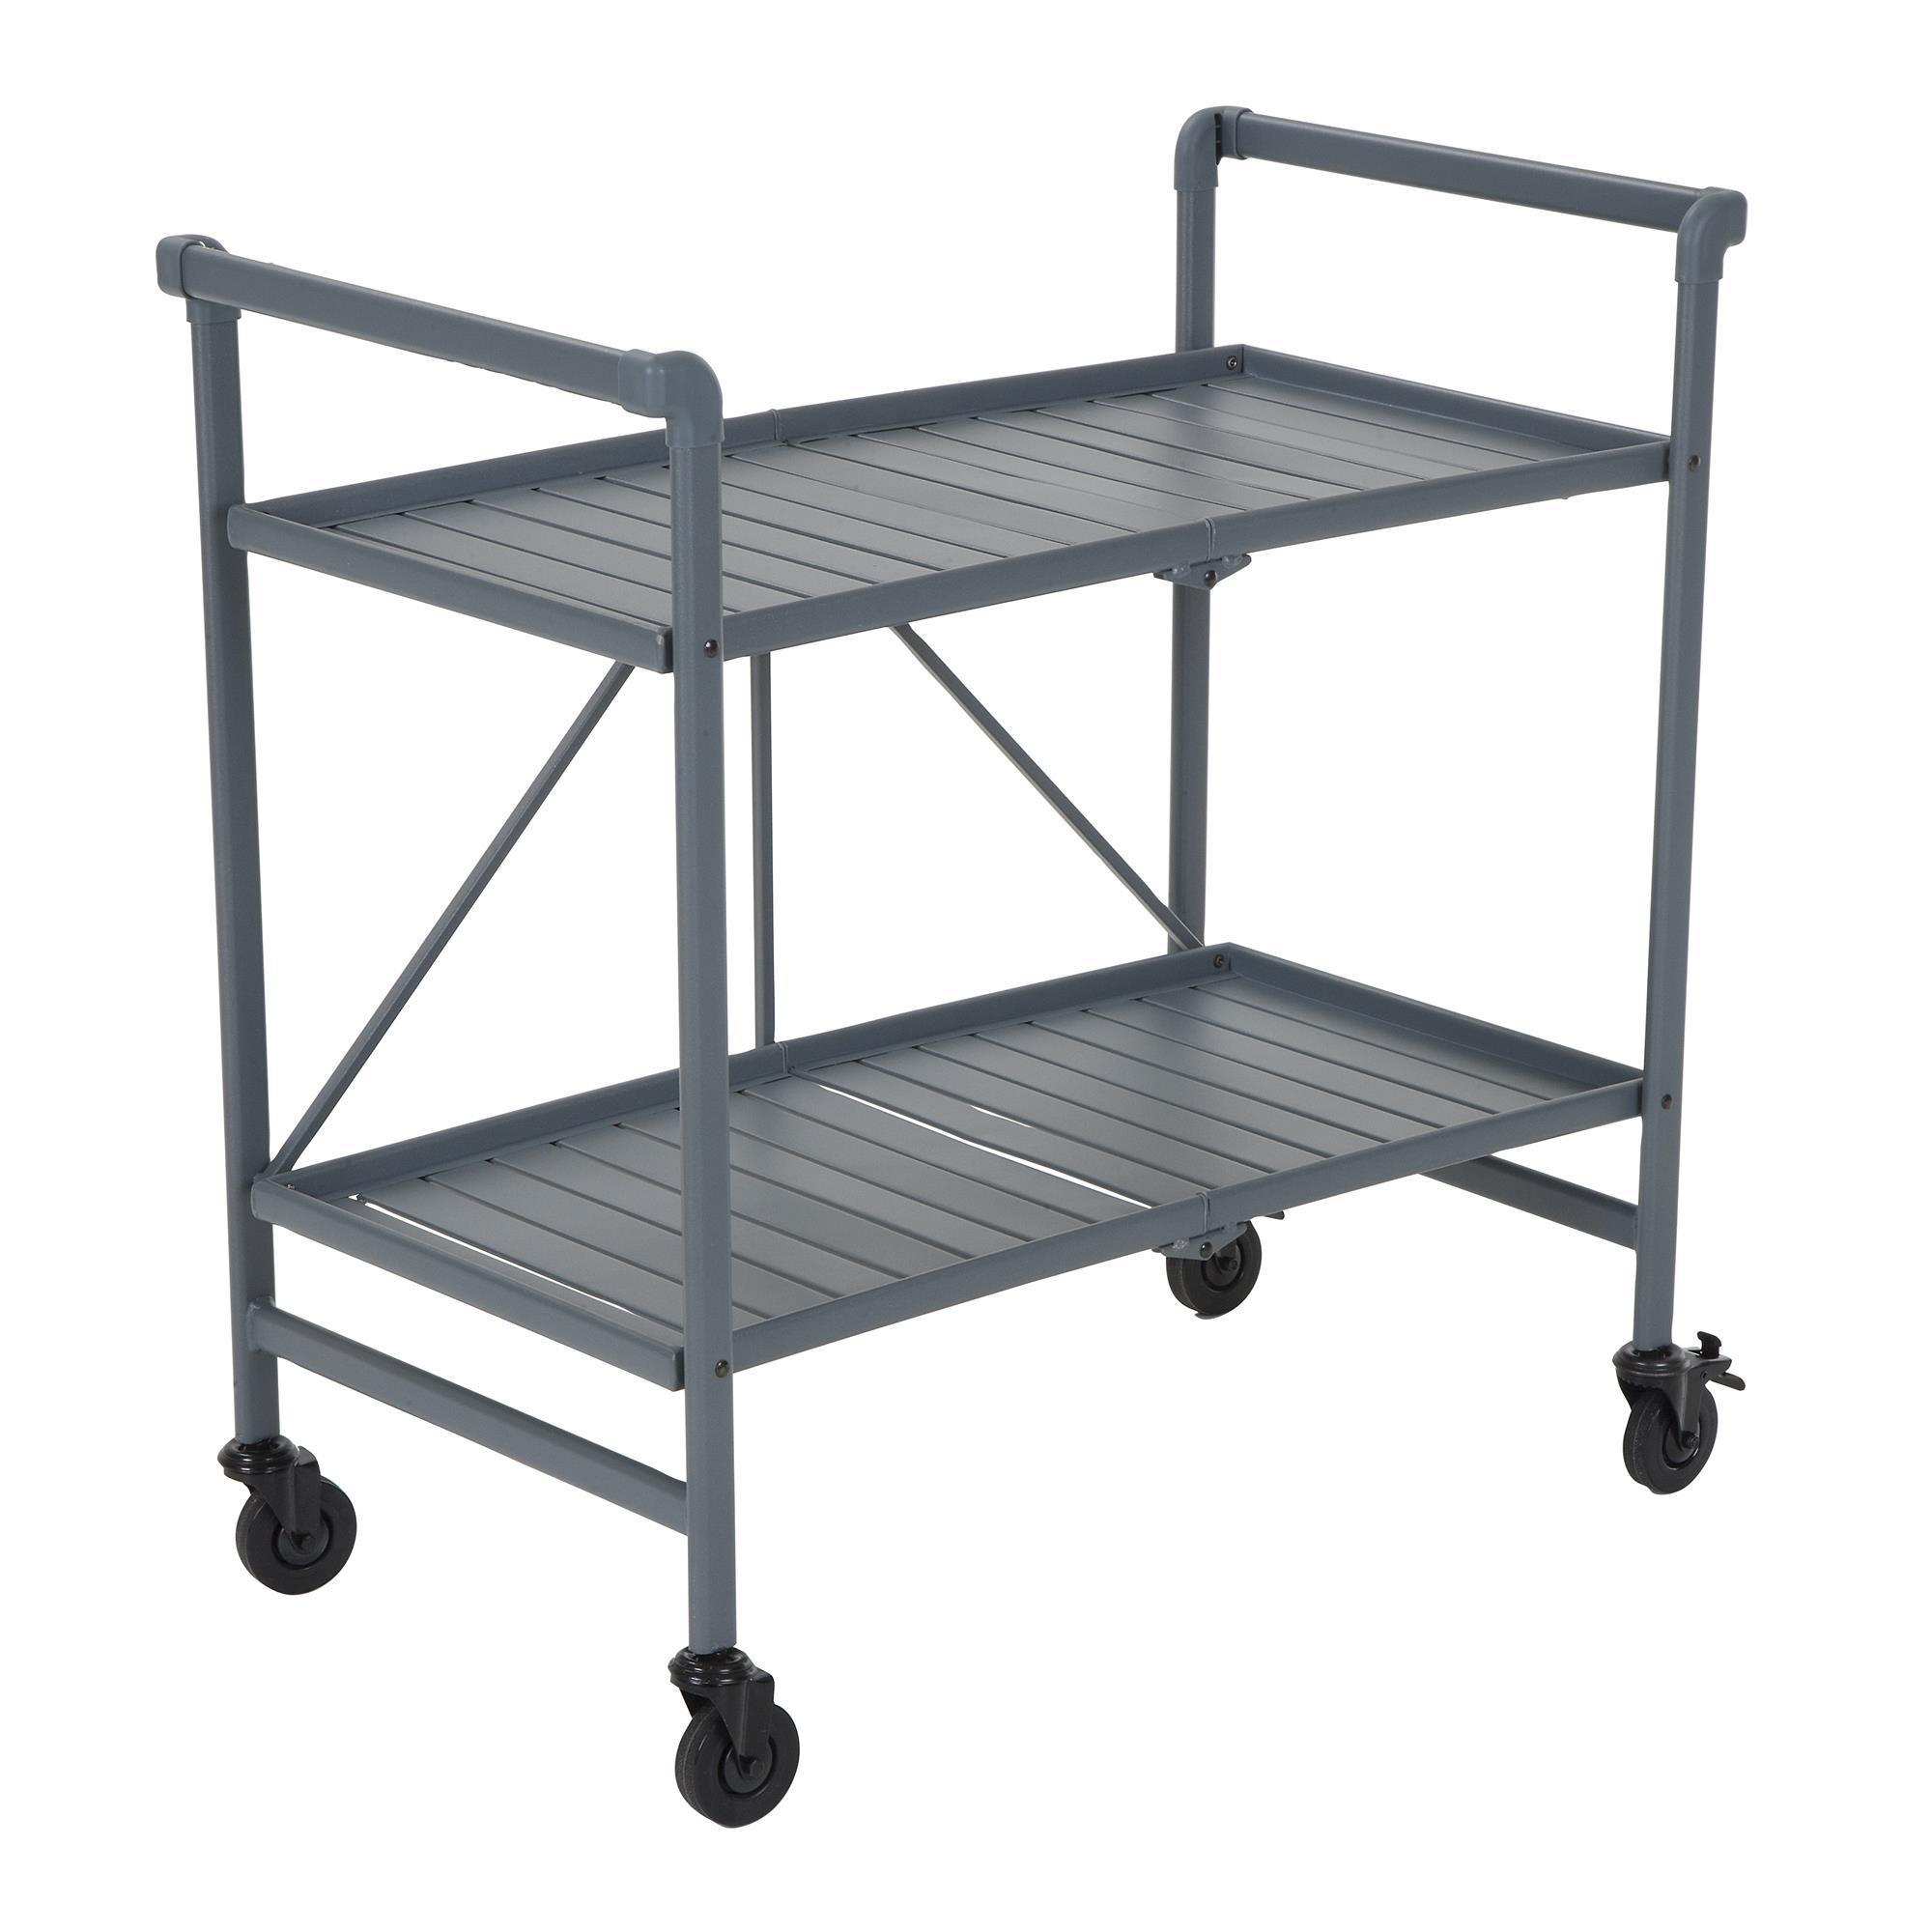 Shop Cosco Outdoor Living SMARTFOLD Outdoor Or Indoor Folding Serving Cart  With 2 Slatted Shelves   On Sale   Free Shipping Today   Overstock.com    20731601